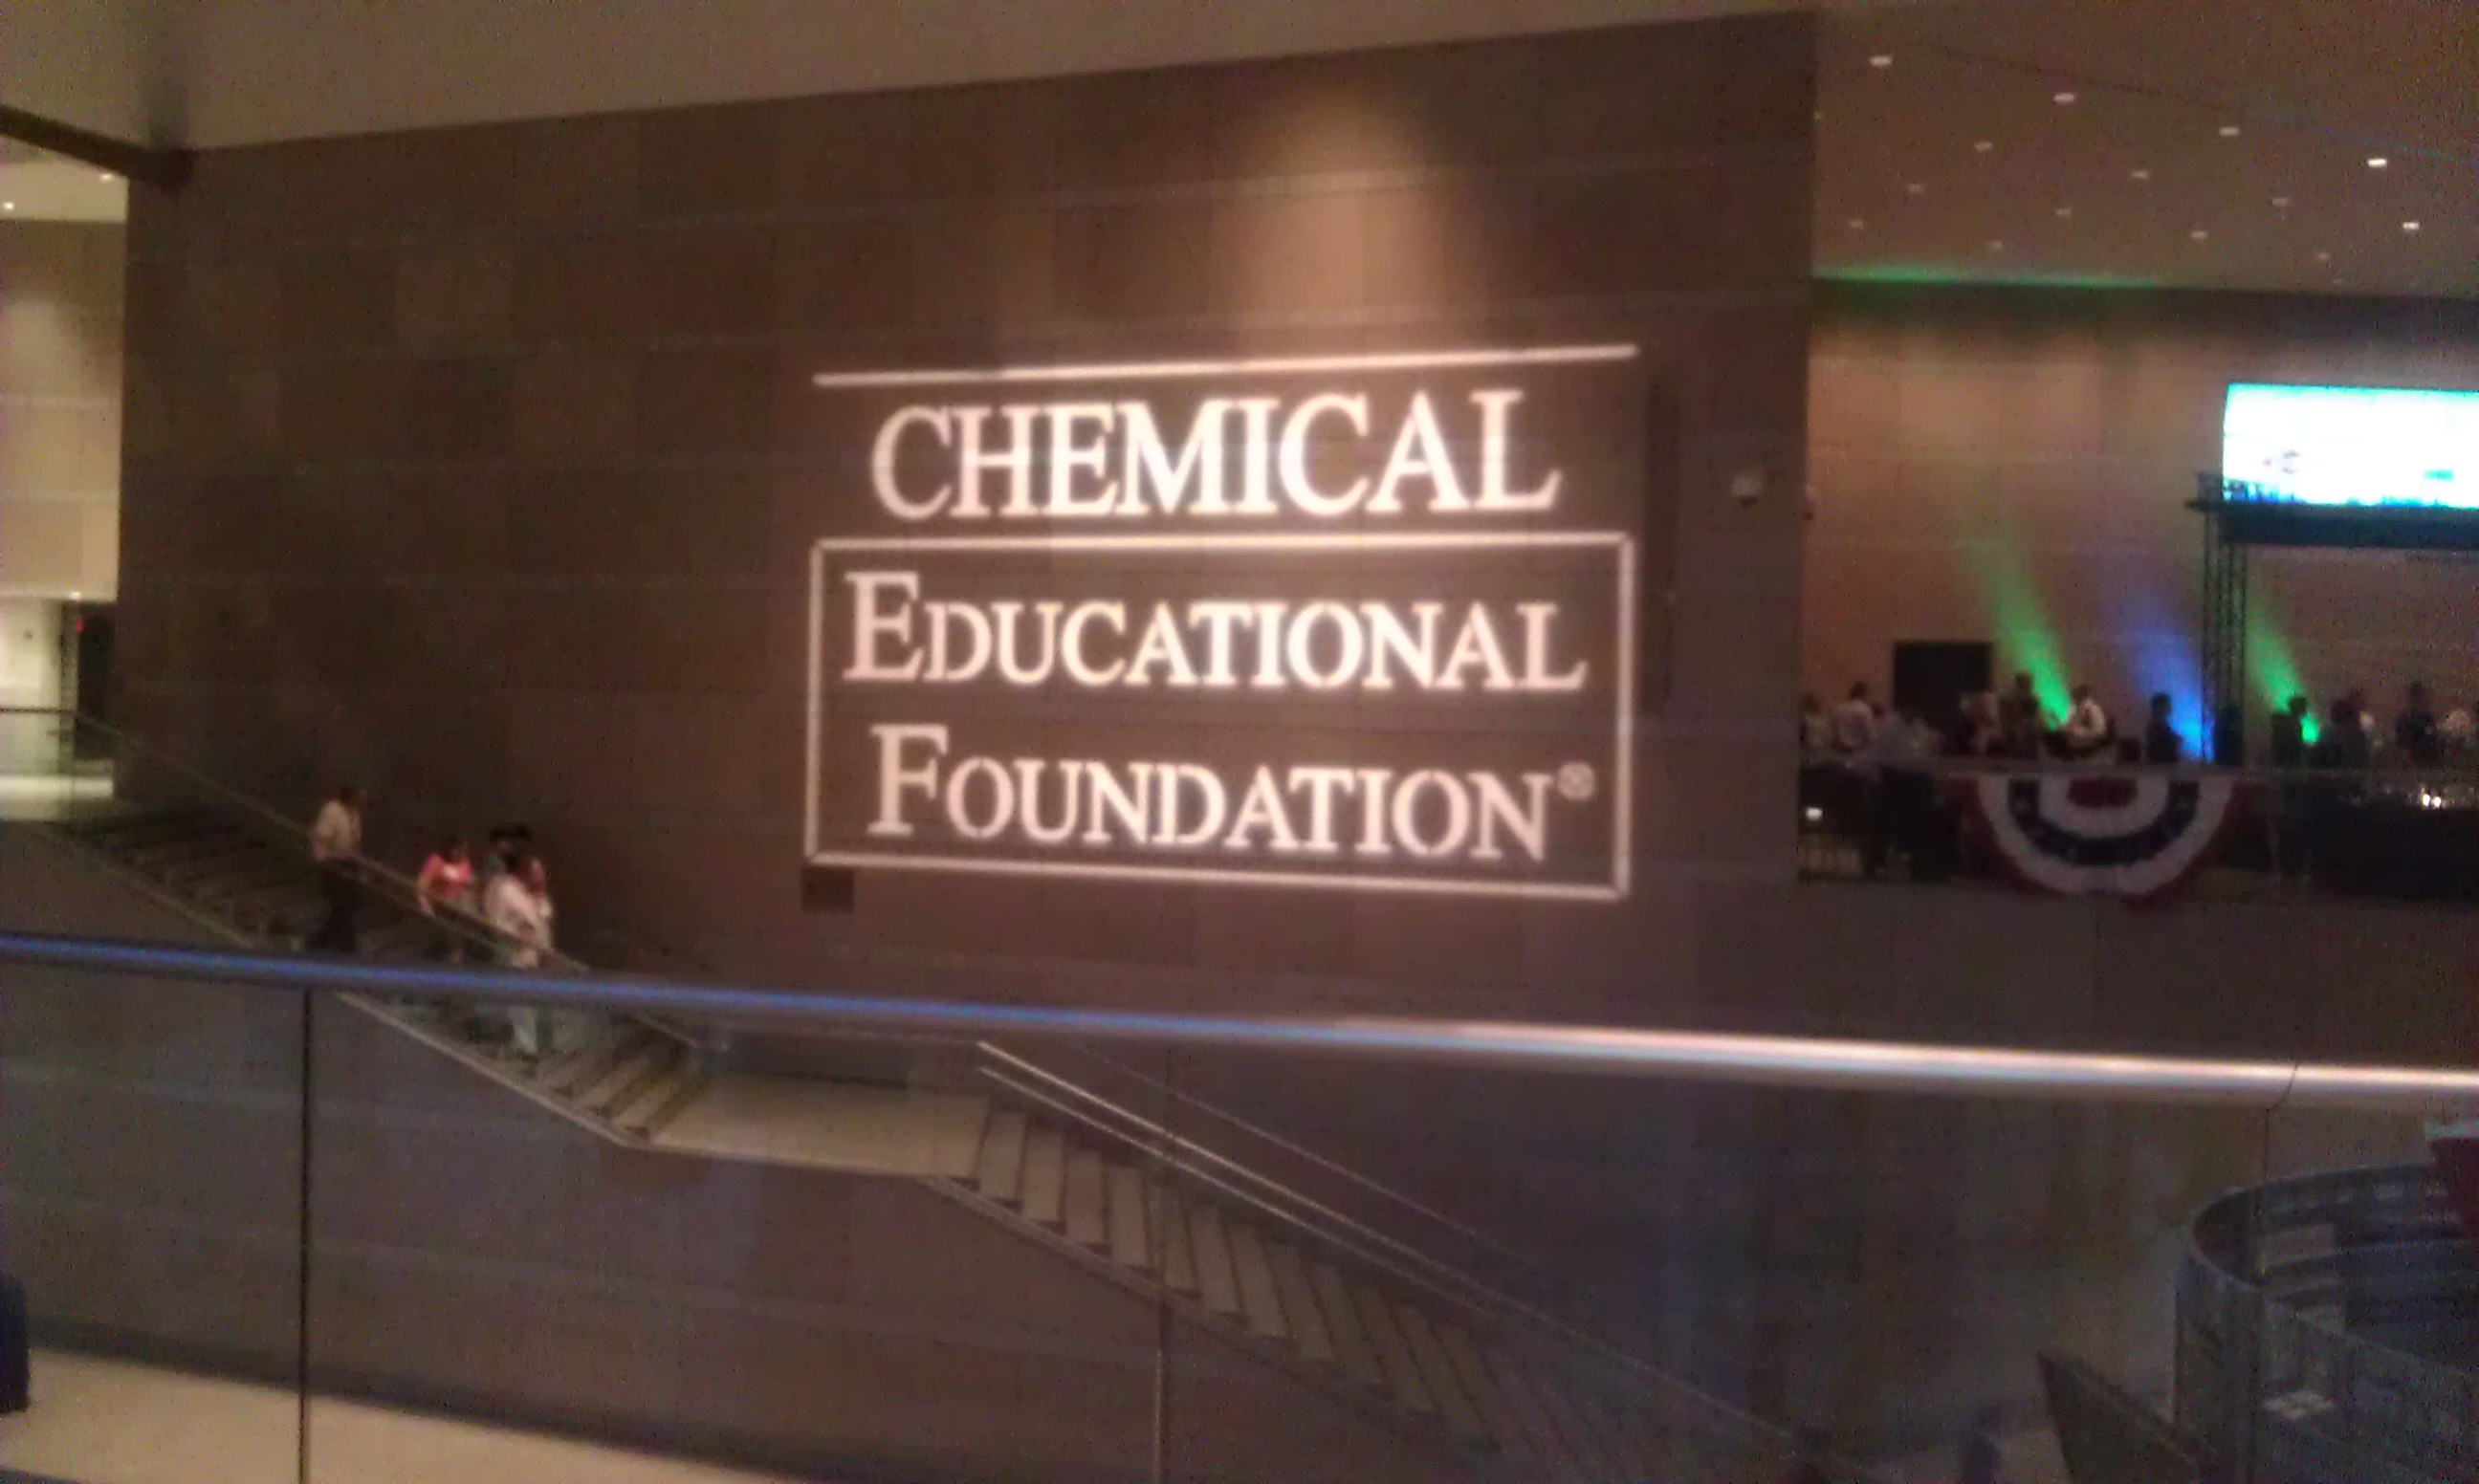 Chemical Educational Foundation